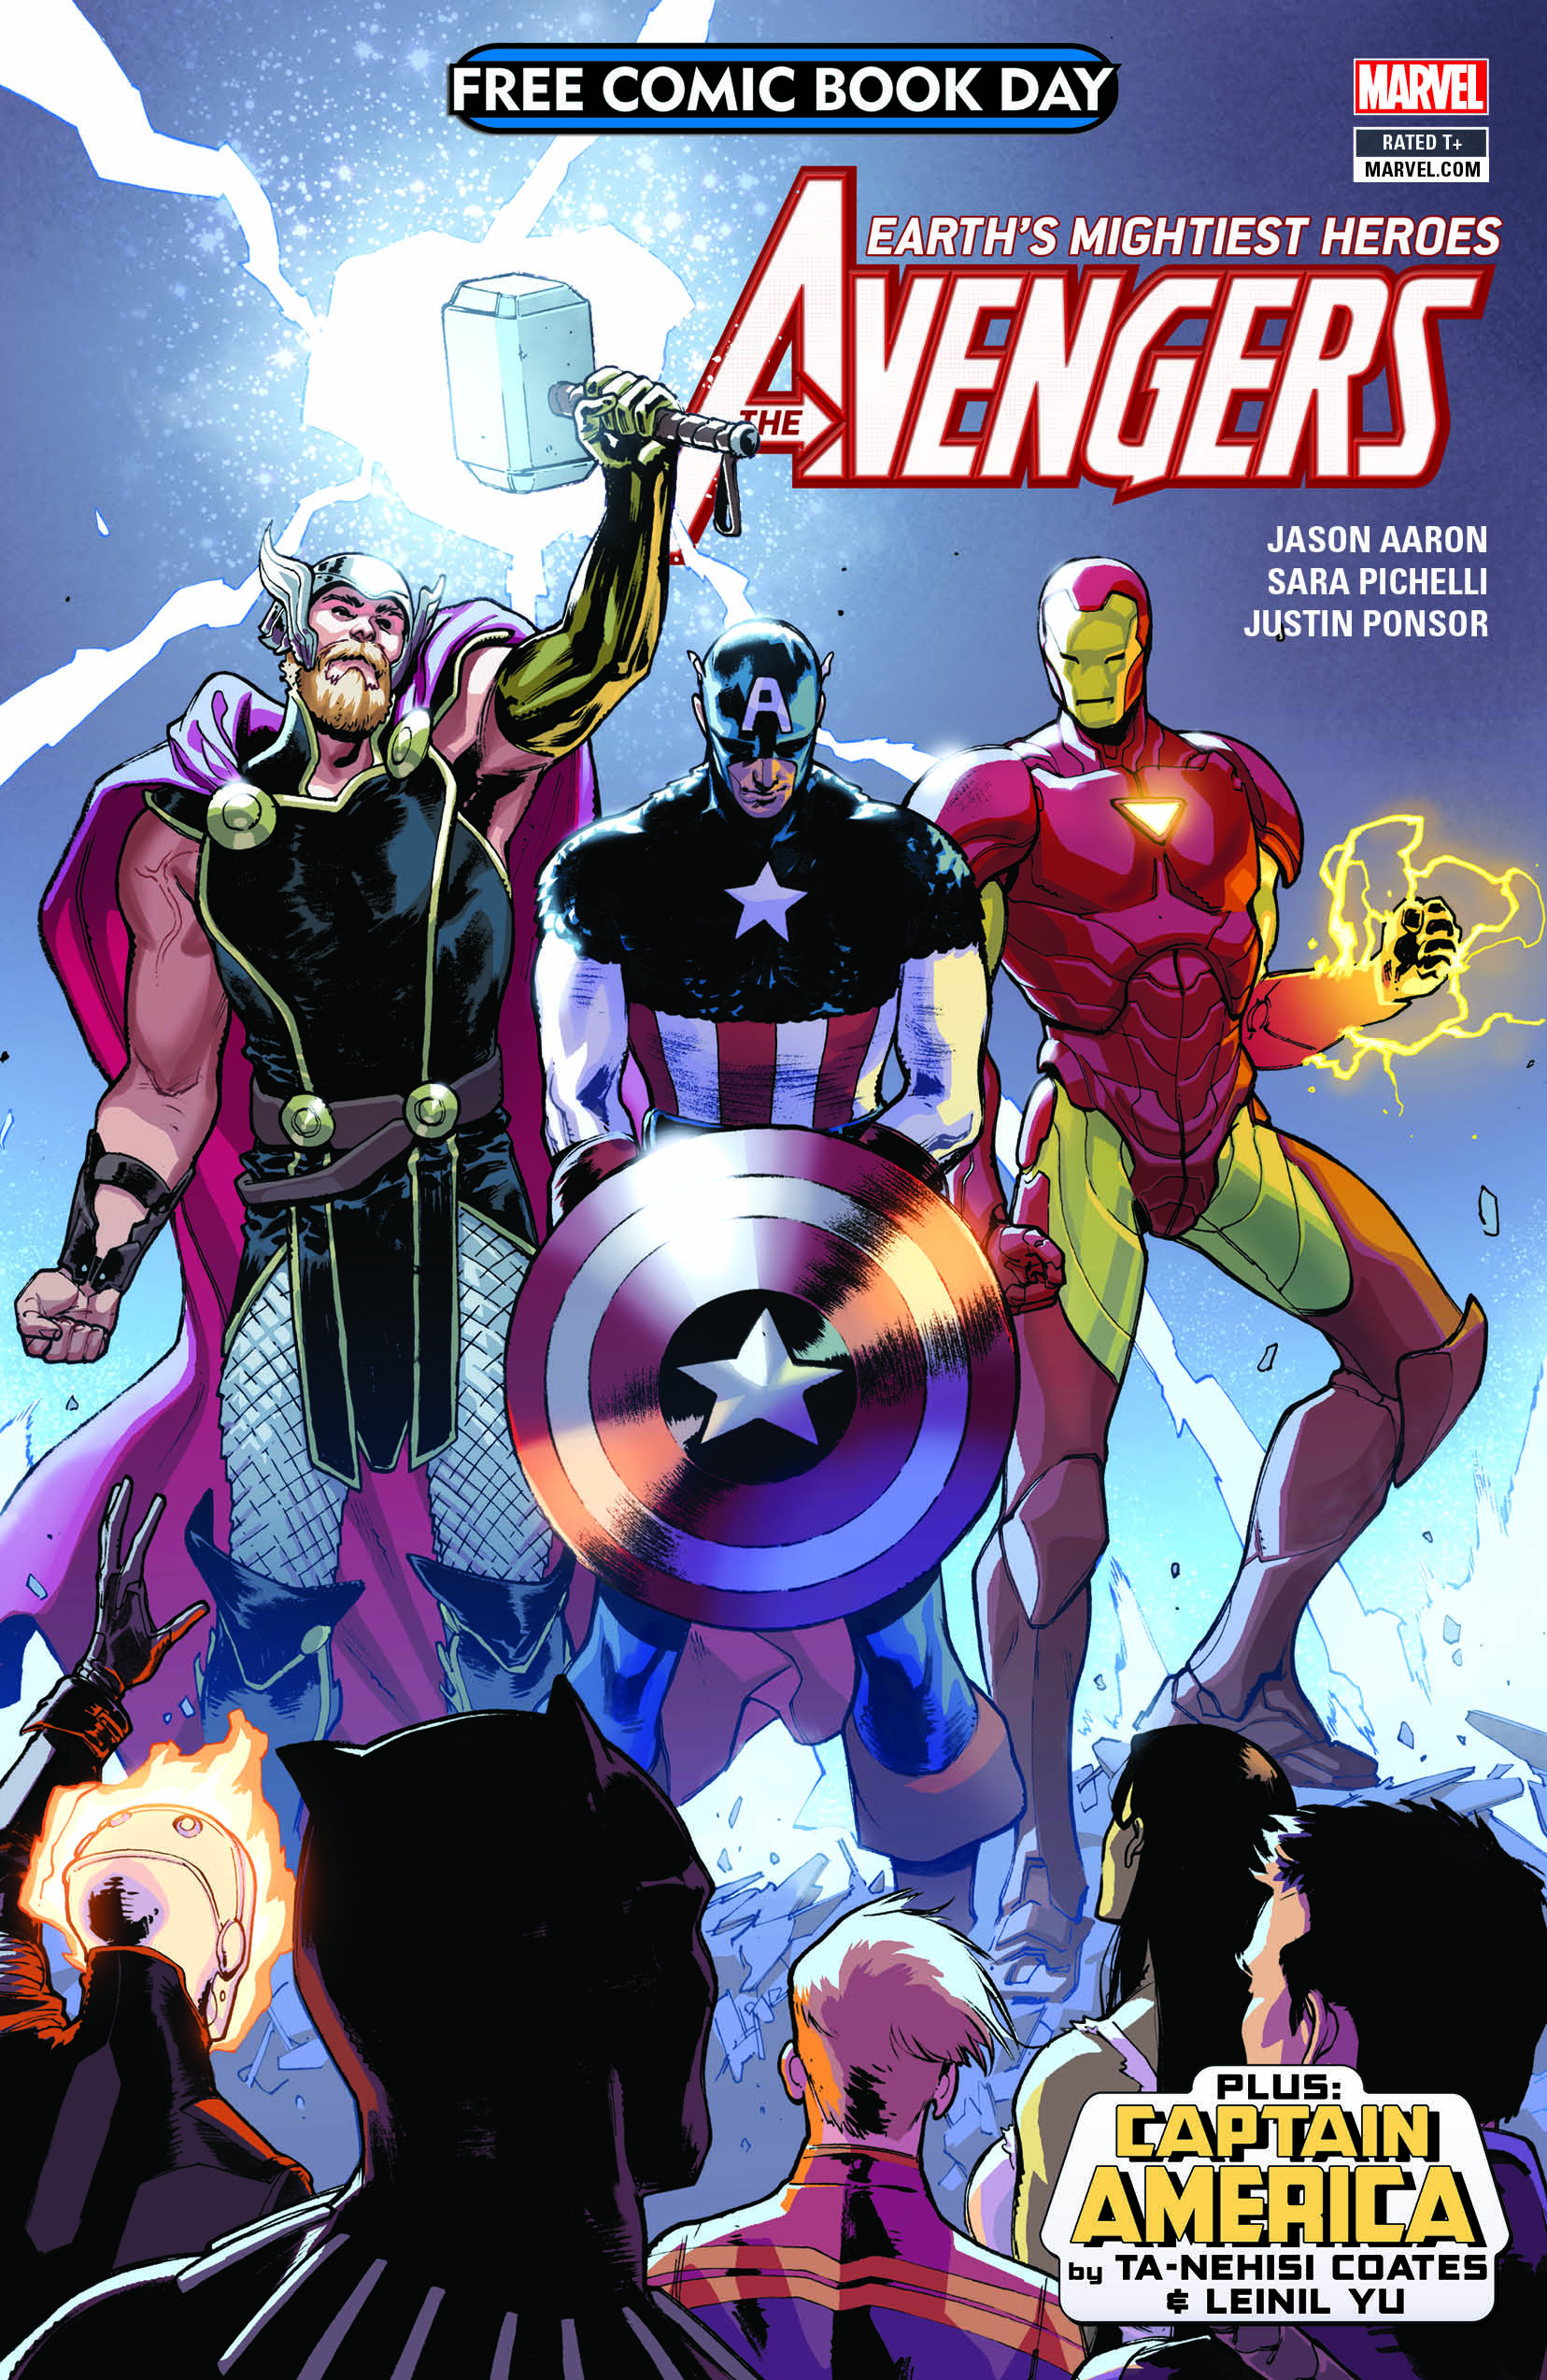 Free Comic Book Day Avengers #1